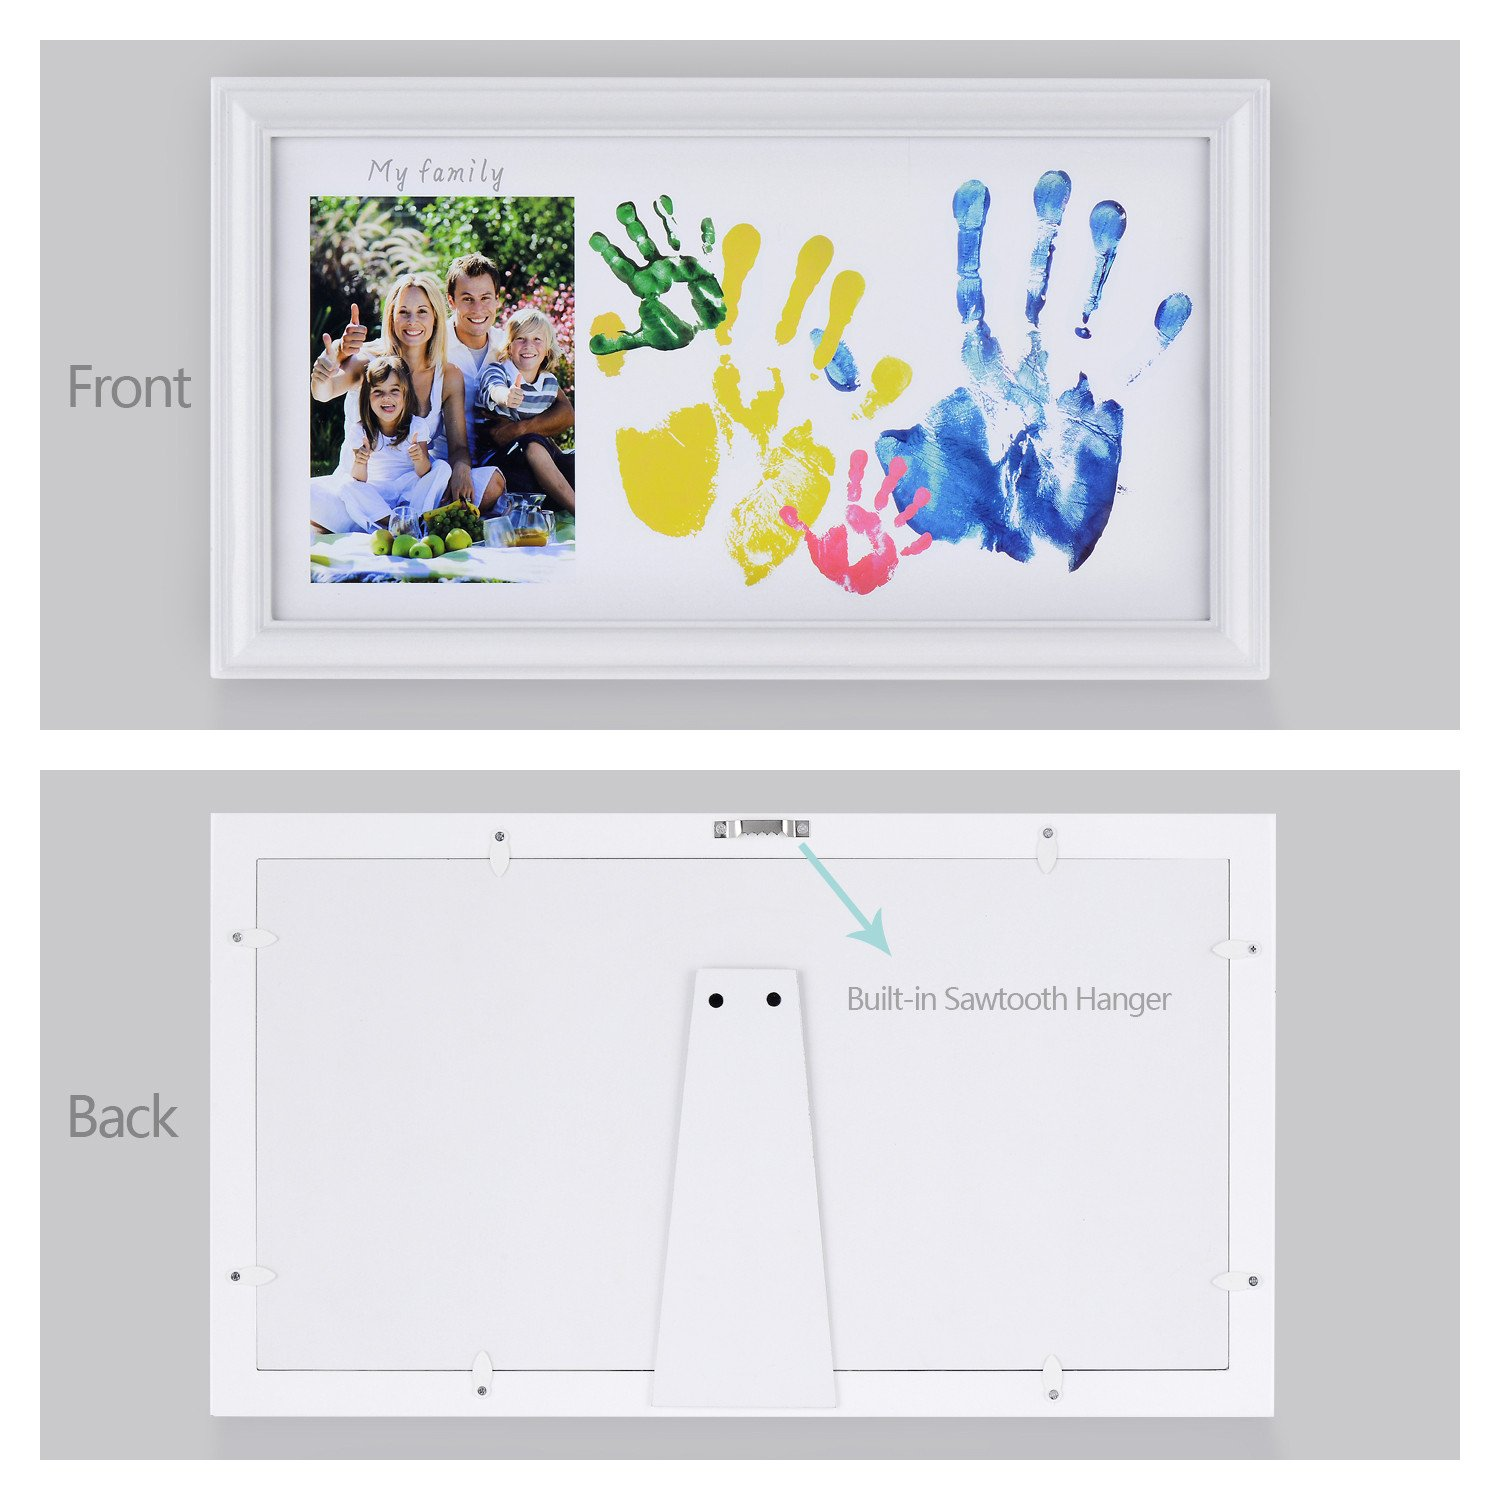 DIY Family Photo+ Family/Baby Handprints/Footprints Kit with 10 X 17'' Elegant White Wood Picture Frame, Non-Toxic Watercolor Paints, Baby Clean-Touch Ink Pad, Baby Registry Shower Keepsakes Gifts by NWK (Image #3)